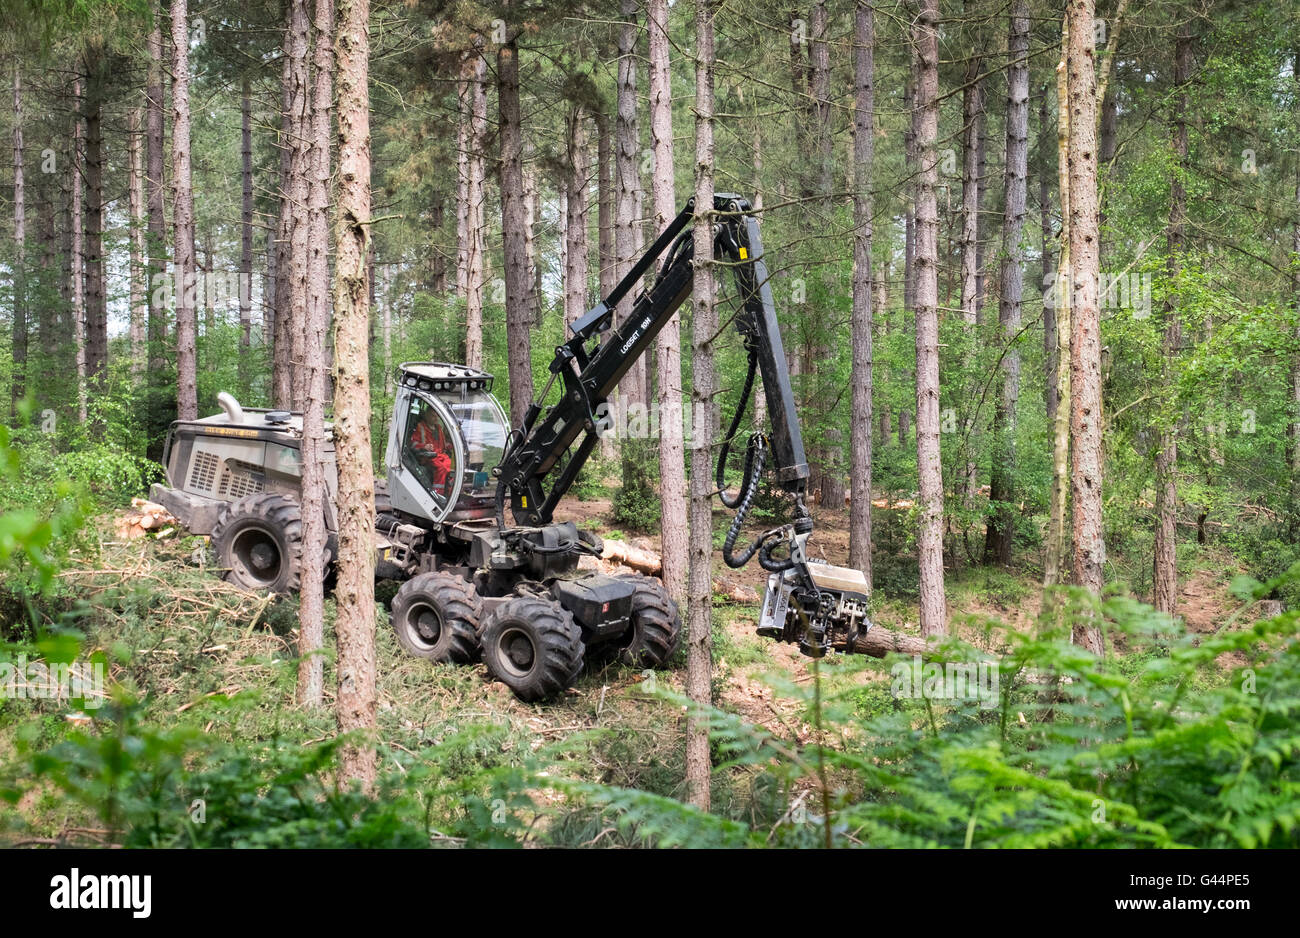 Felling trees in the New Forest using a Harvester machine - Stock Image